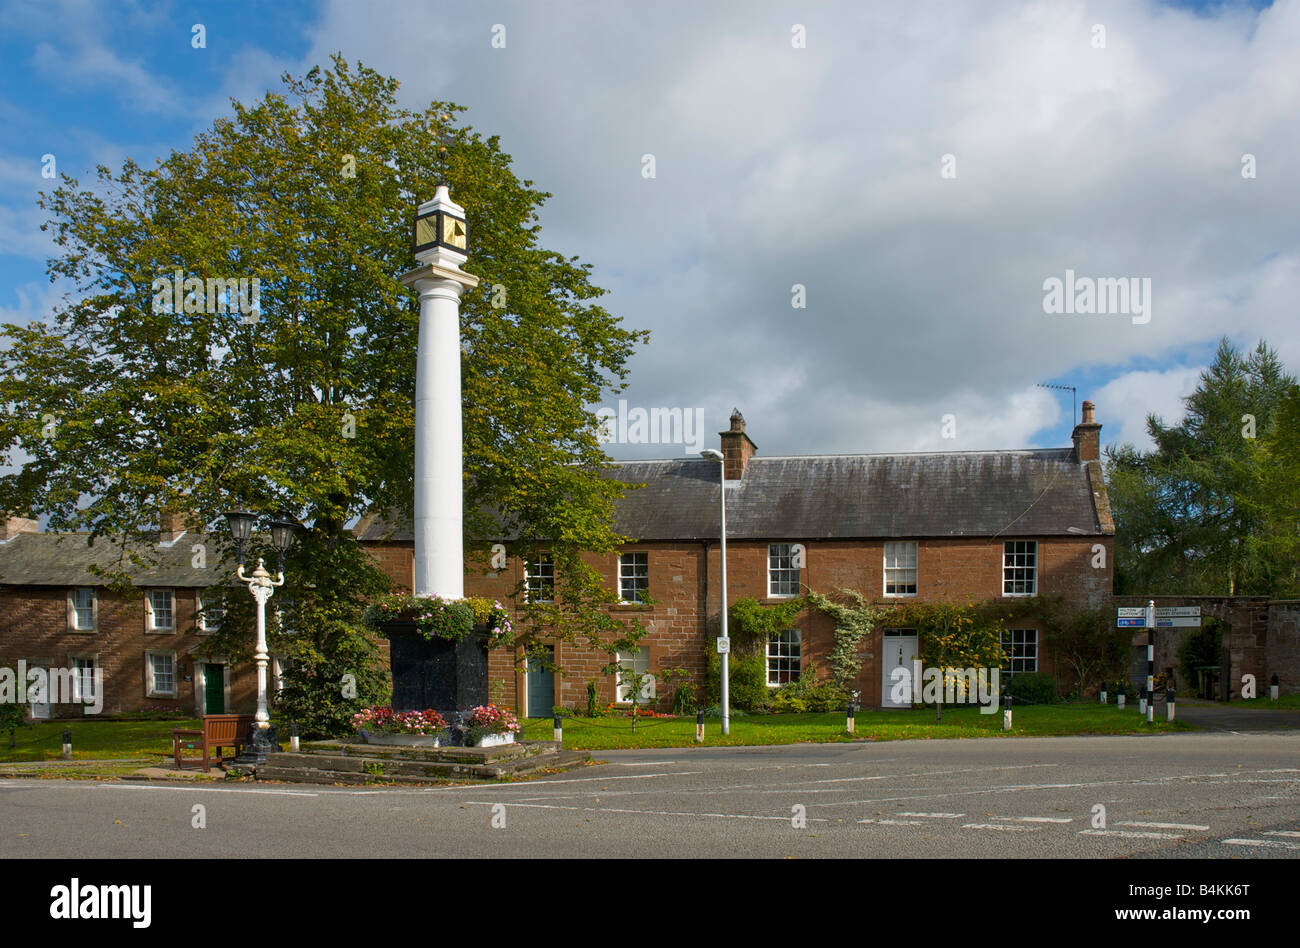 High Cross, at the top of Broughgate, Appleby, Eden Valley, Cumbria, England UK - Stock Image